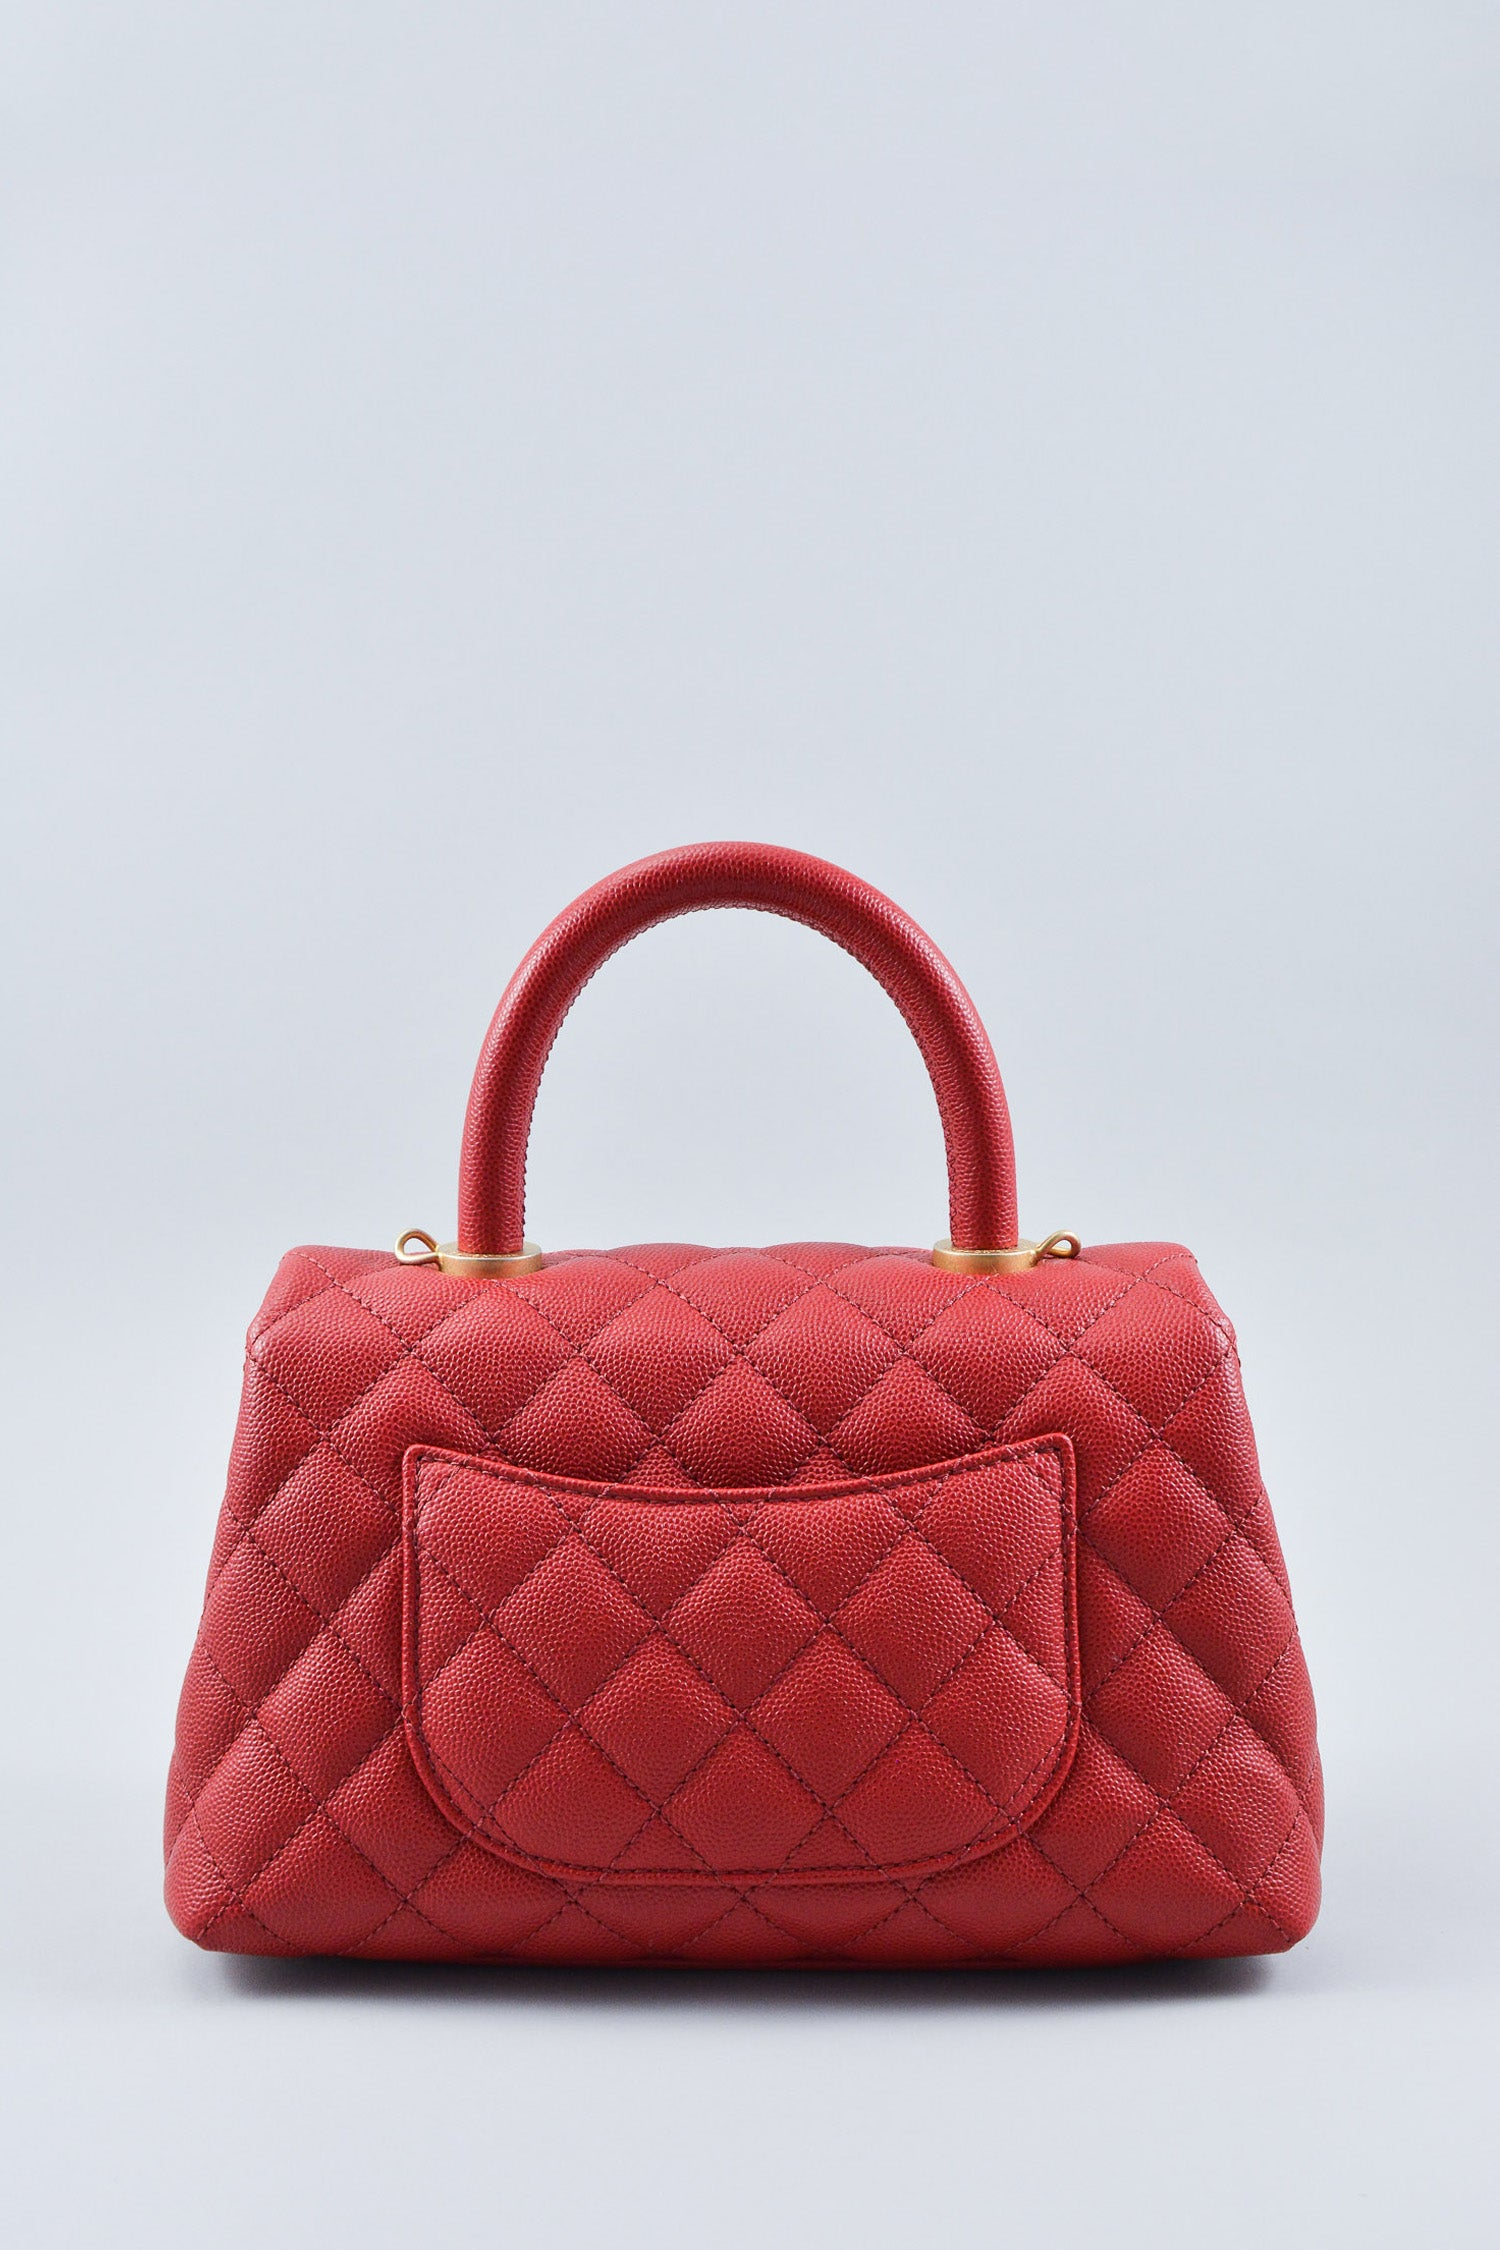 Chanel Red Top Handle Caviar Bag